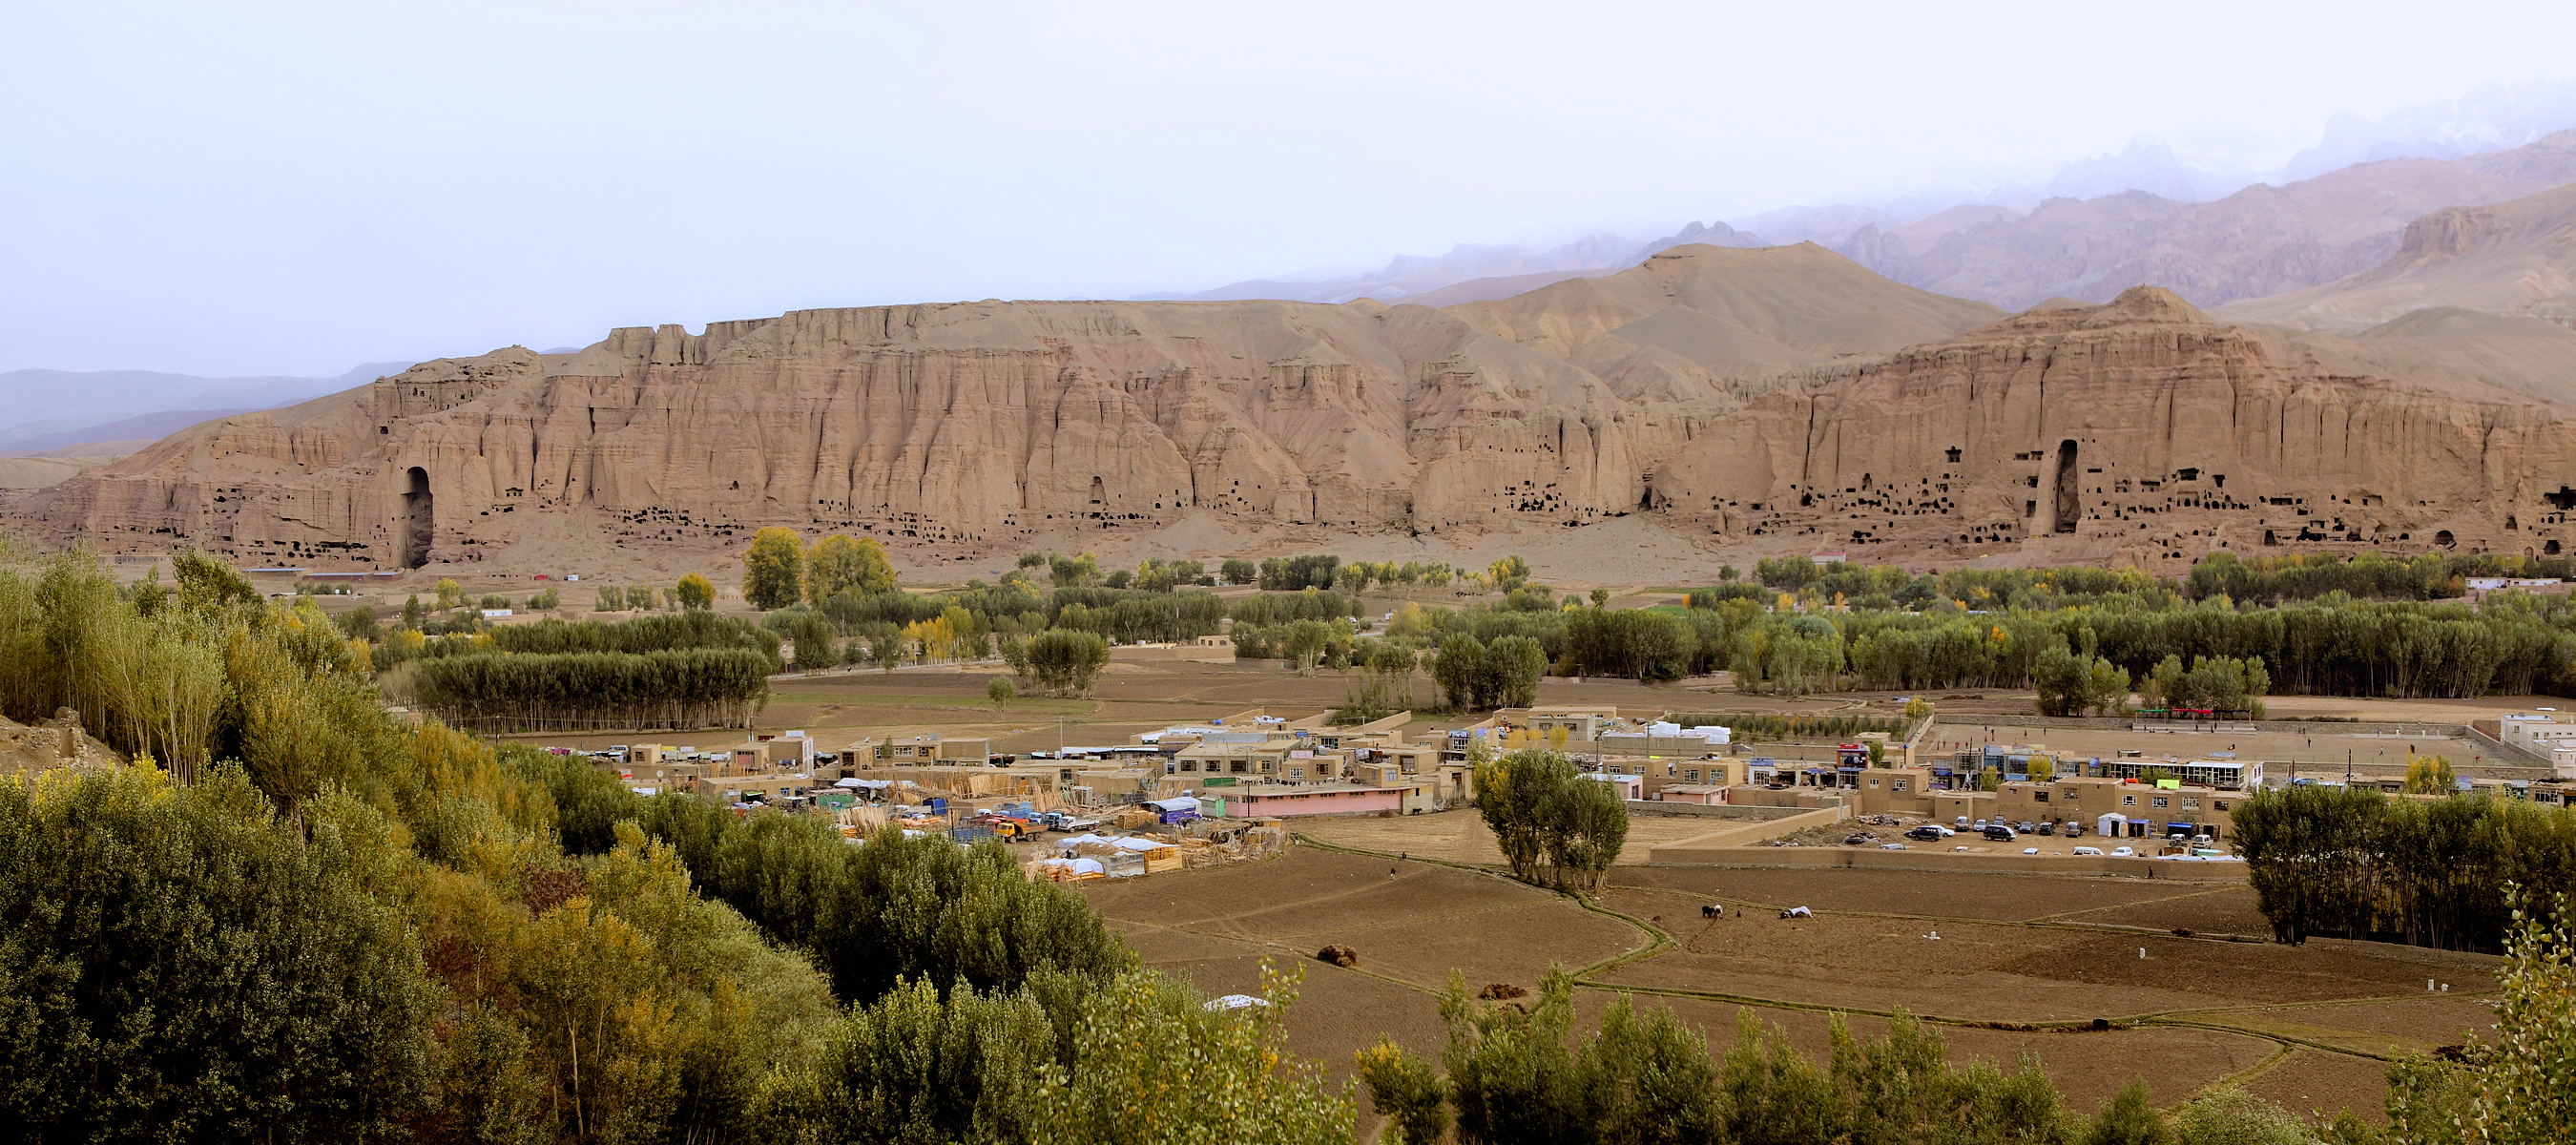 A wide view of Bamiyan Valley in Afghanistan. Bamiyan lies on the Silk Road which lies in the Hindu Kush mountain region, in the Bamiyan Valley. The Silk Road is a caravan route linking the markets of China with those of Western Asia. Until the 11th century, Bamiyan was part of the kingdom of Gandhara. It was a Buddhist religious site from the 2nd century up to the time of the Islamic invasion in the 9th century. Monks at the monasteries lived as hermits in small caves carved into the side of the Bamiyan cliffs. Like Bamiyan valley in this country have thousand of yearÕs historical places and beautiful landscapes. The tourism industry of Afghanistan, developed with government help in the early 1970s, has been negligible since 2001 due to internal political instability. Travel was highly restricted in the country due to the US-led campaign against the Taliban and al-Qaeda. Because of kidnaping and suicidal attack tourism industry had been almost ruined in Afghanistan. After downfall of Taliban regime nowadays Afghanistan can be rebuild its tourism industry. Today World Tourism Organization's slogan should be 'rebuild Afghan tourism for powering sustainable development in Afghanistan'.